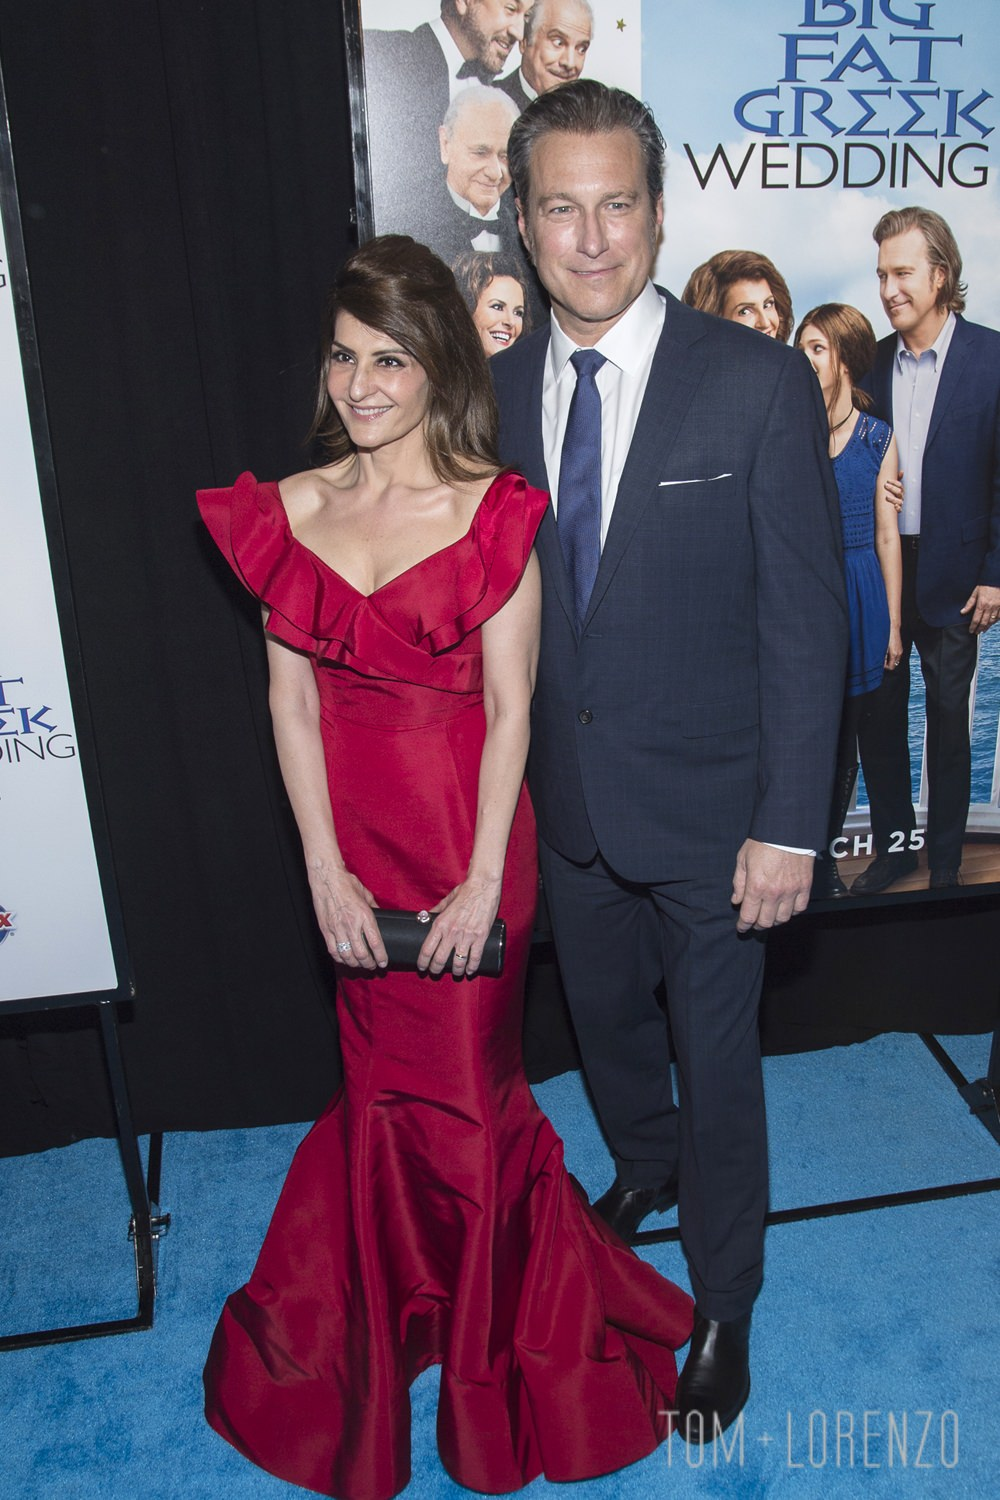 My Big Fat Greek Wedding 2.Nia Vardalos And John Corbett At The My Big Fat Greek